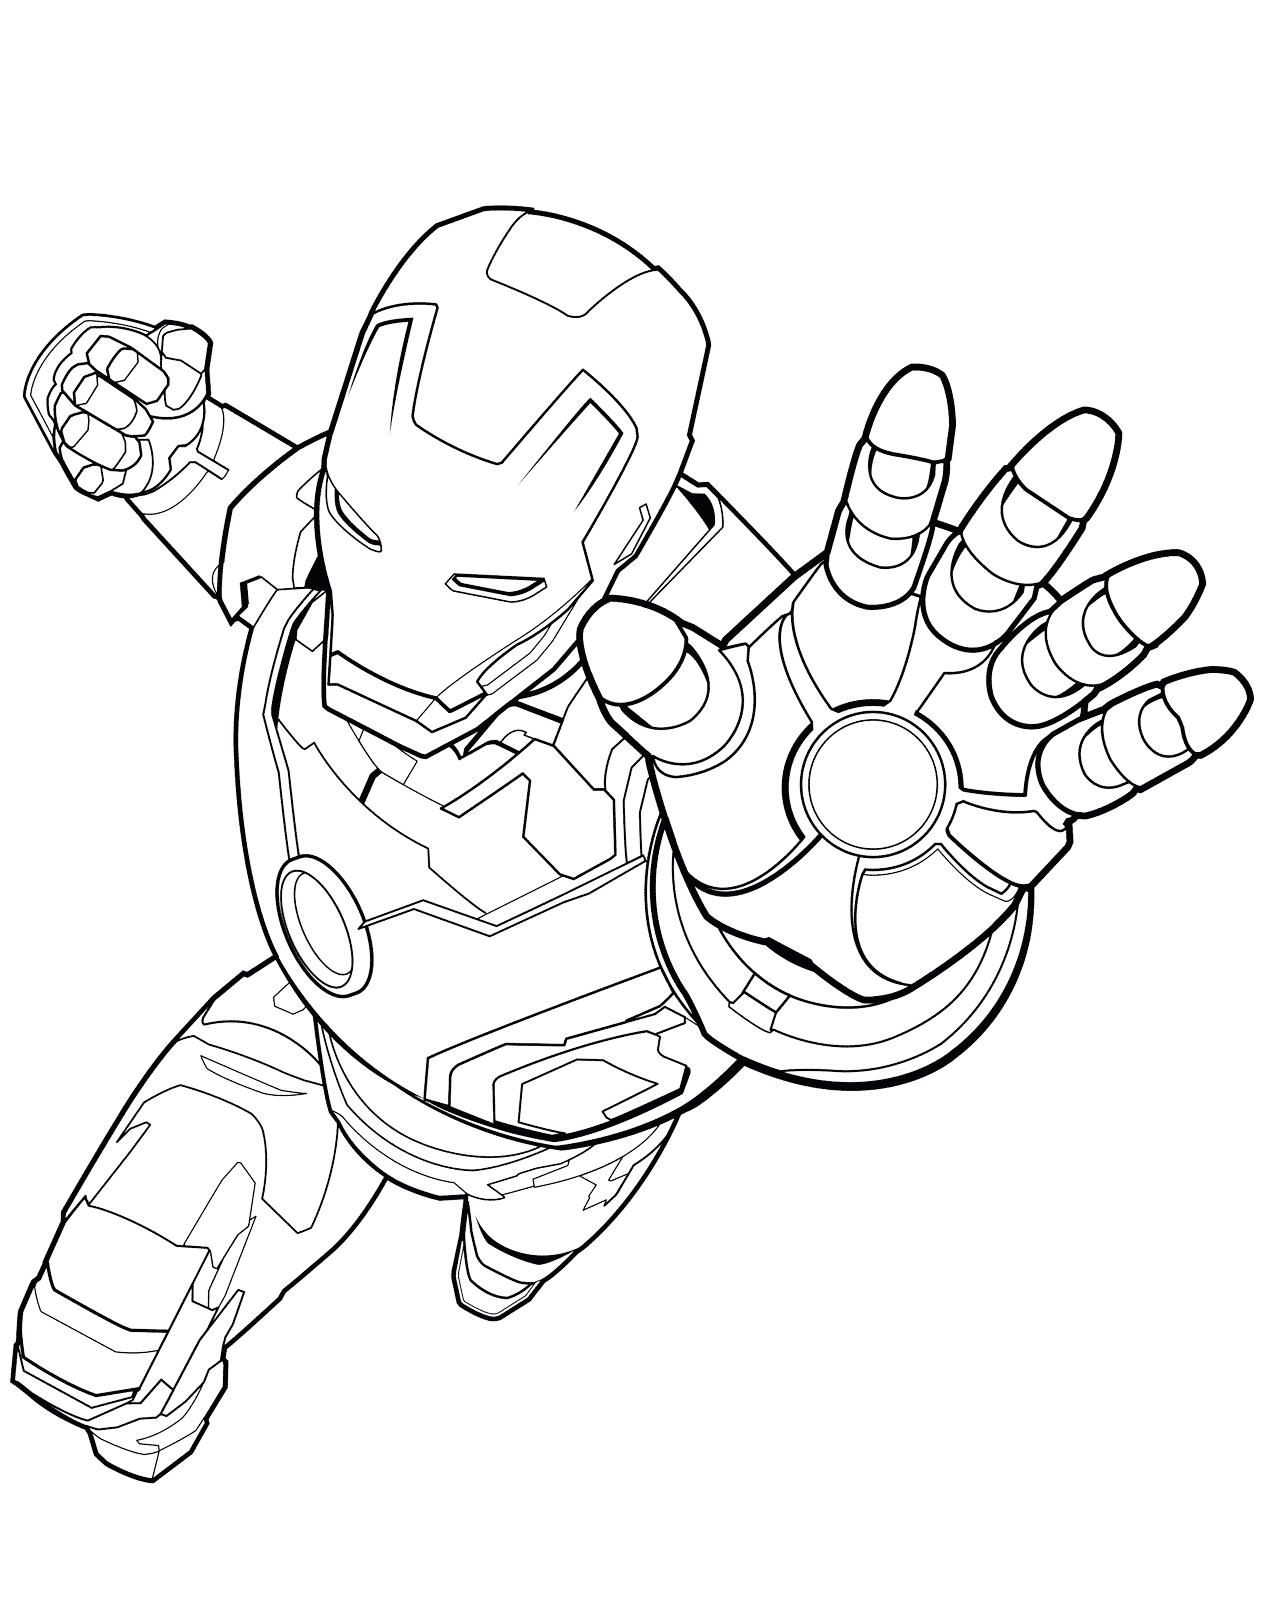 Coloring Pages Iron Man Superhero Coloring Pages Avengers Coloring Avengers Coloring Pages